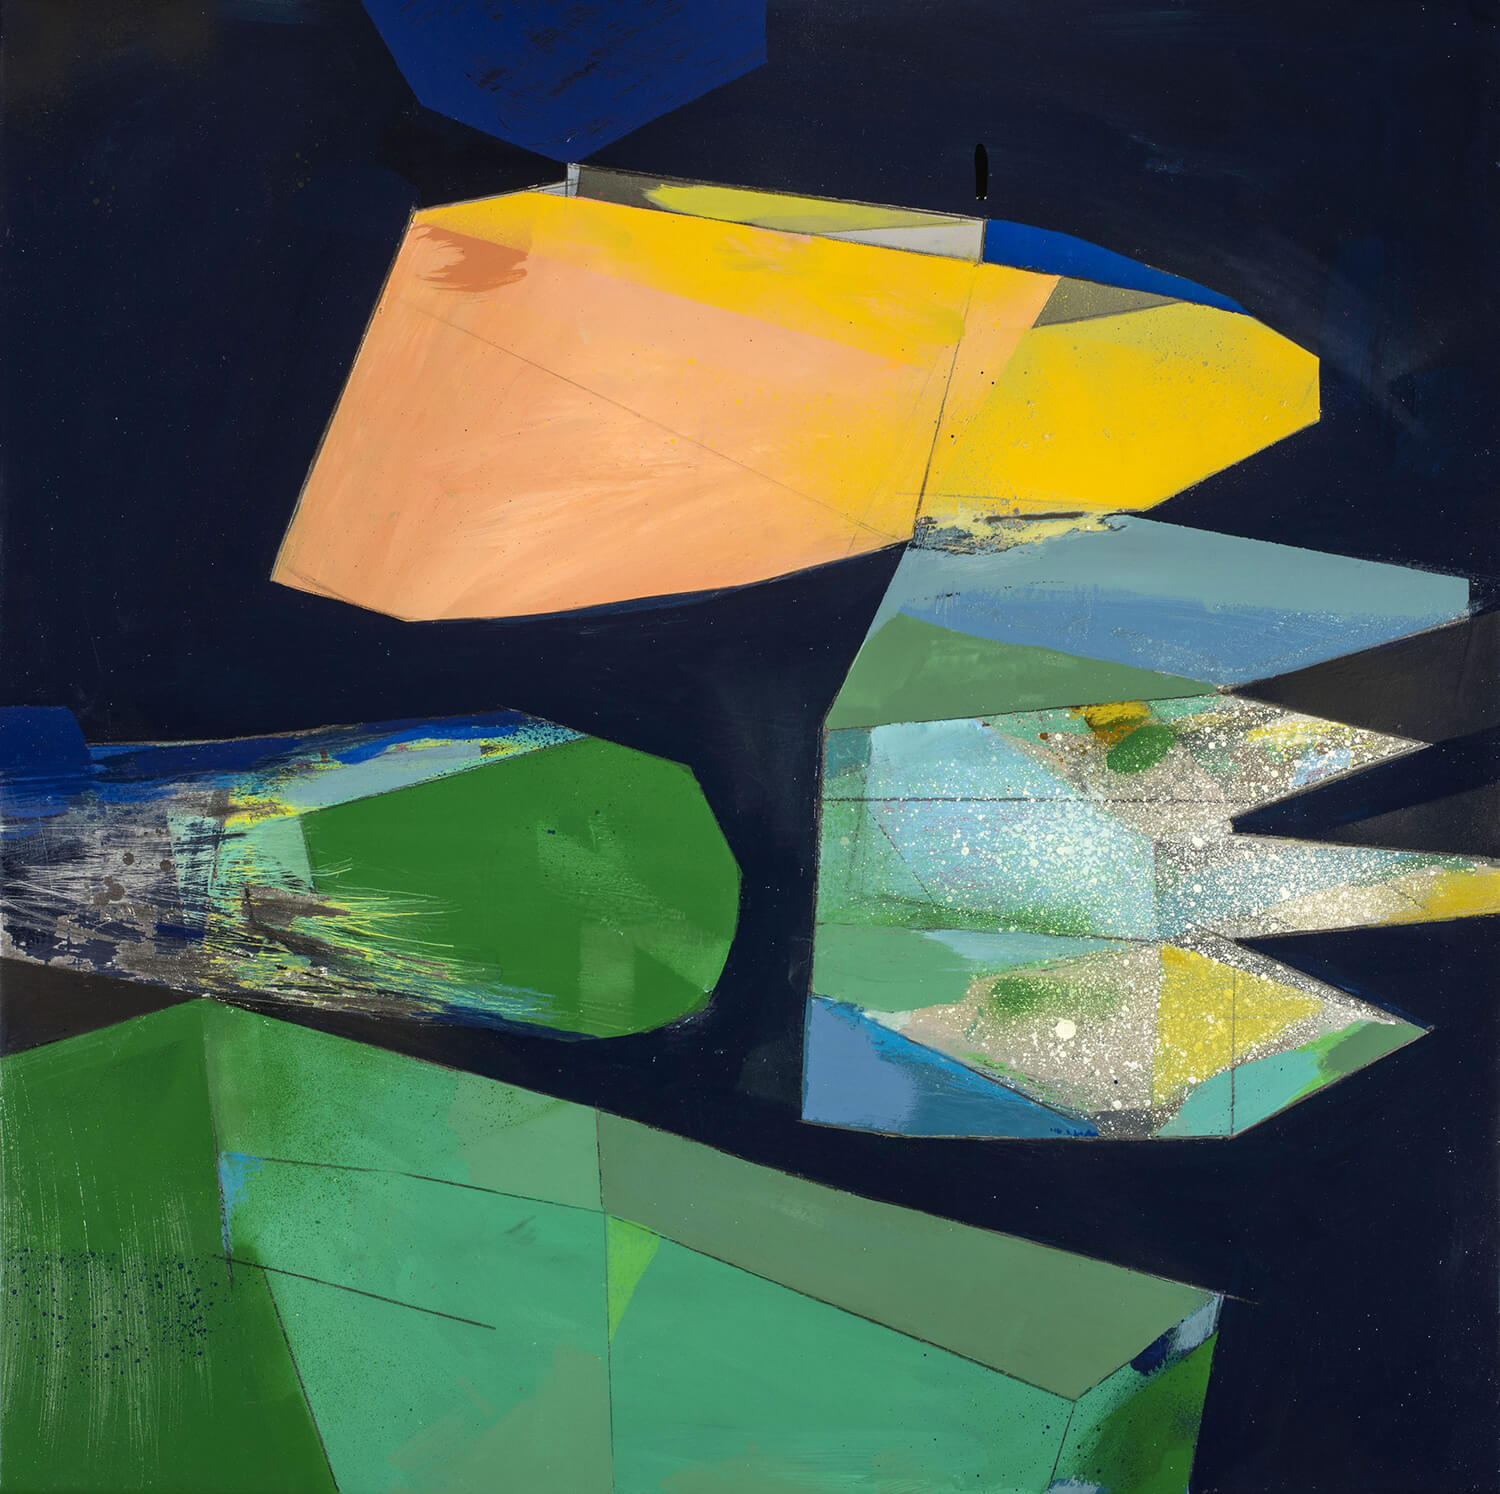 'Chlorite Shands' by Ari Athens | Edwina Corlette Gallery